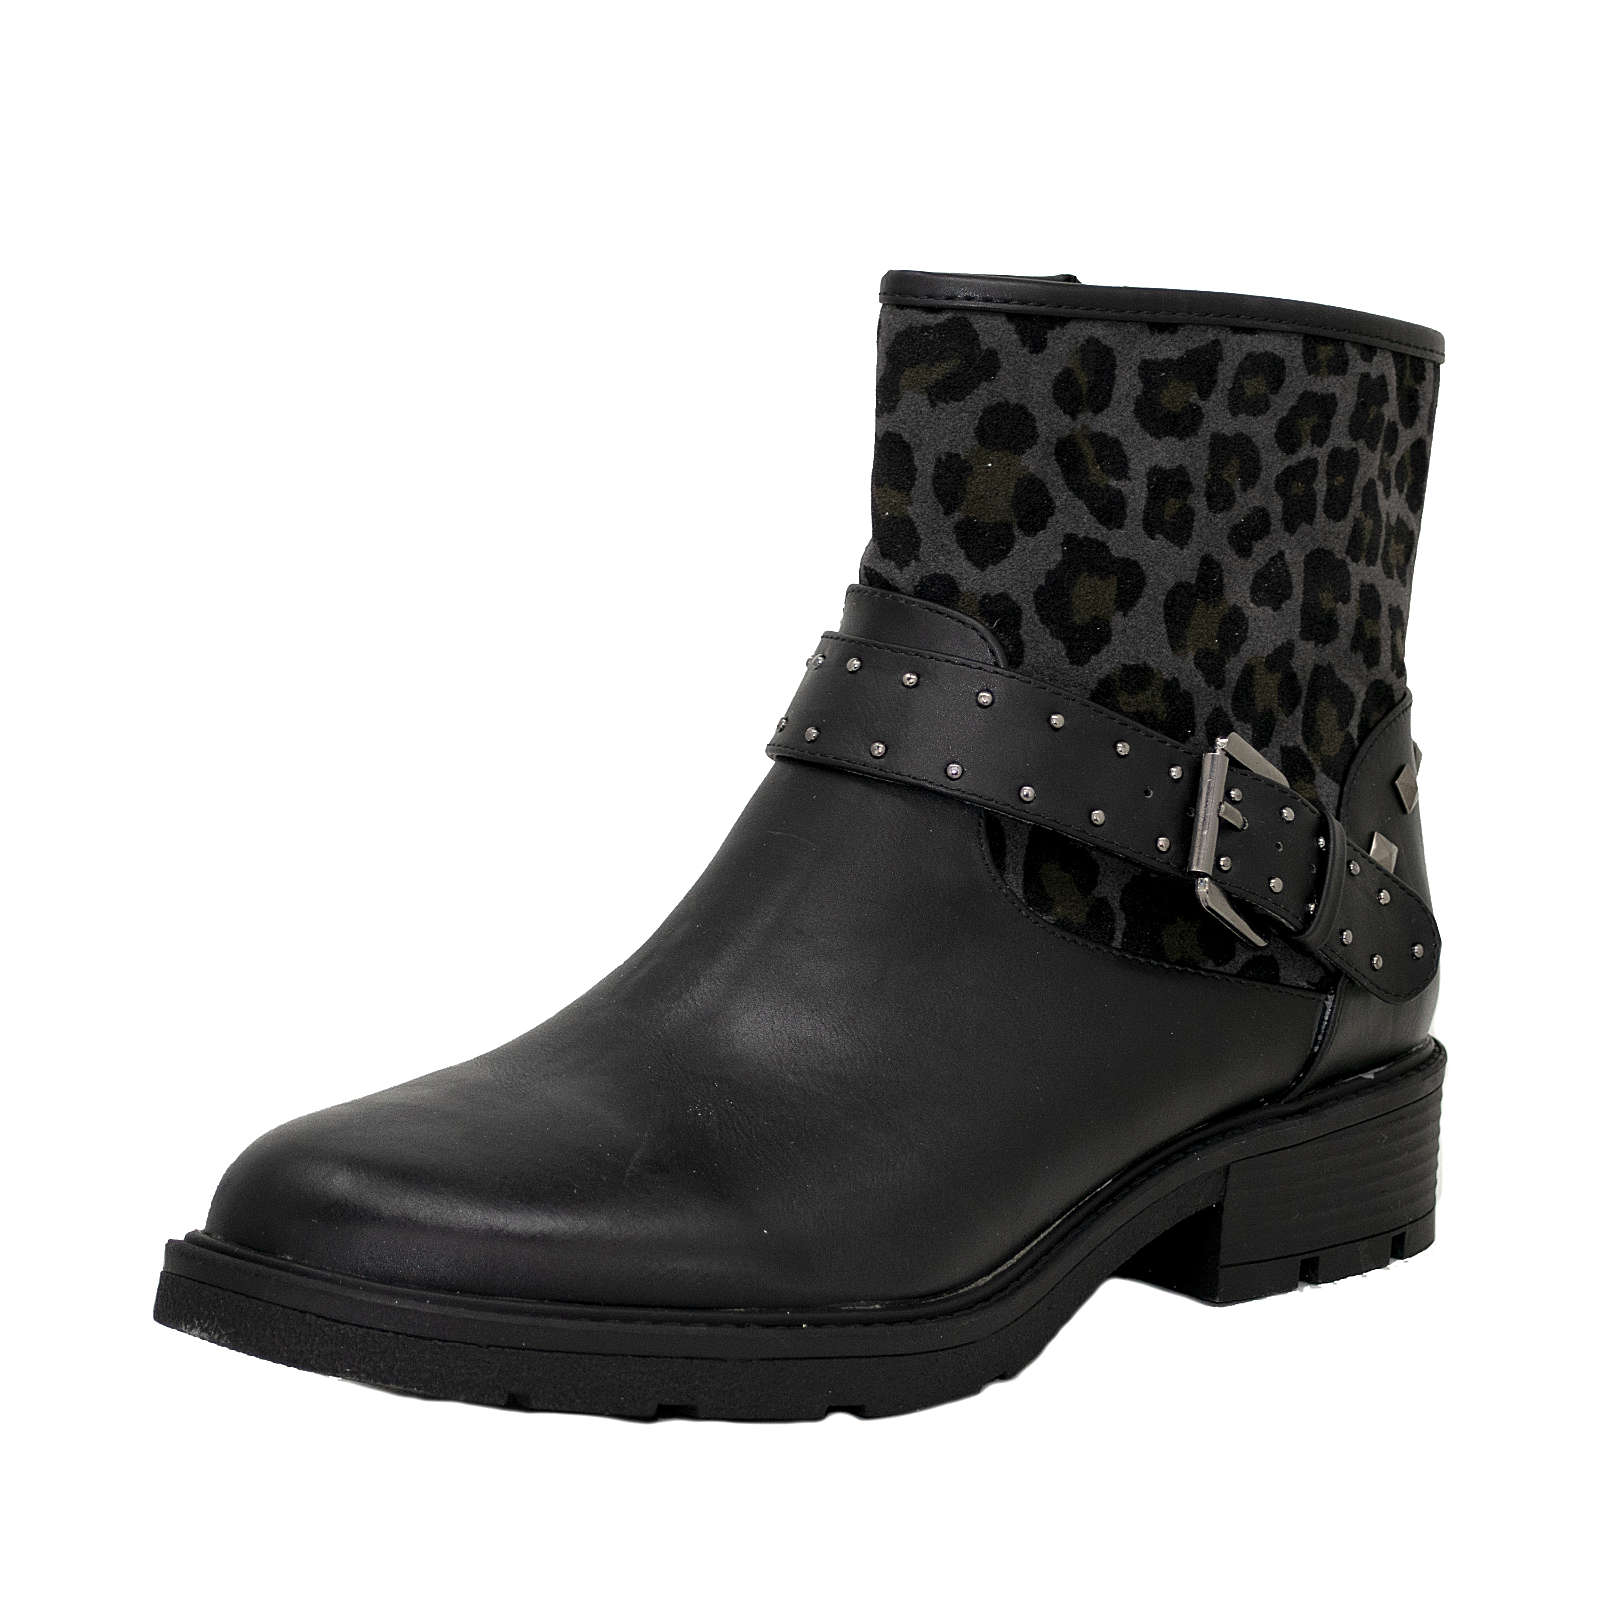 That Fits Stiefelette Elia Ankle Boots